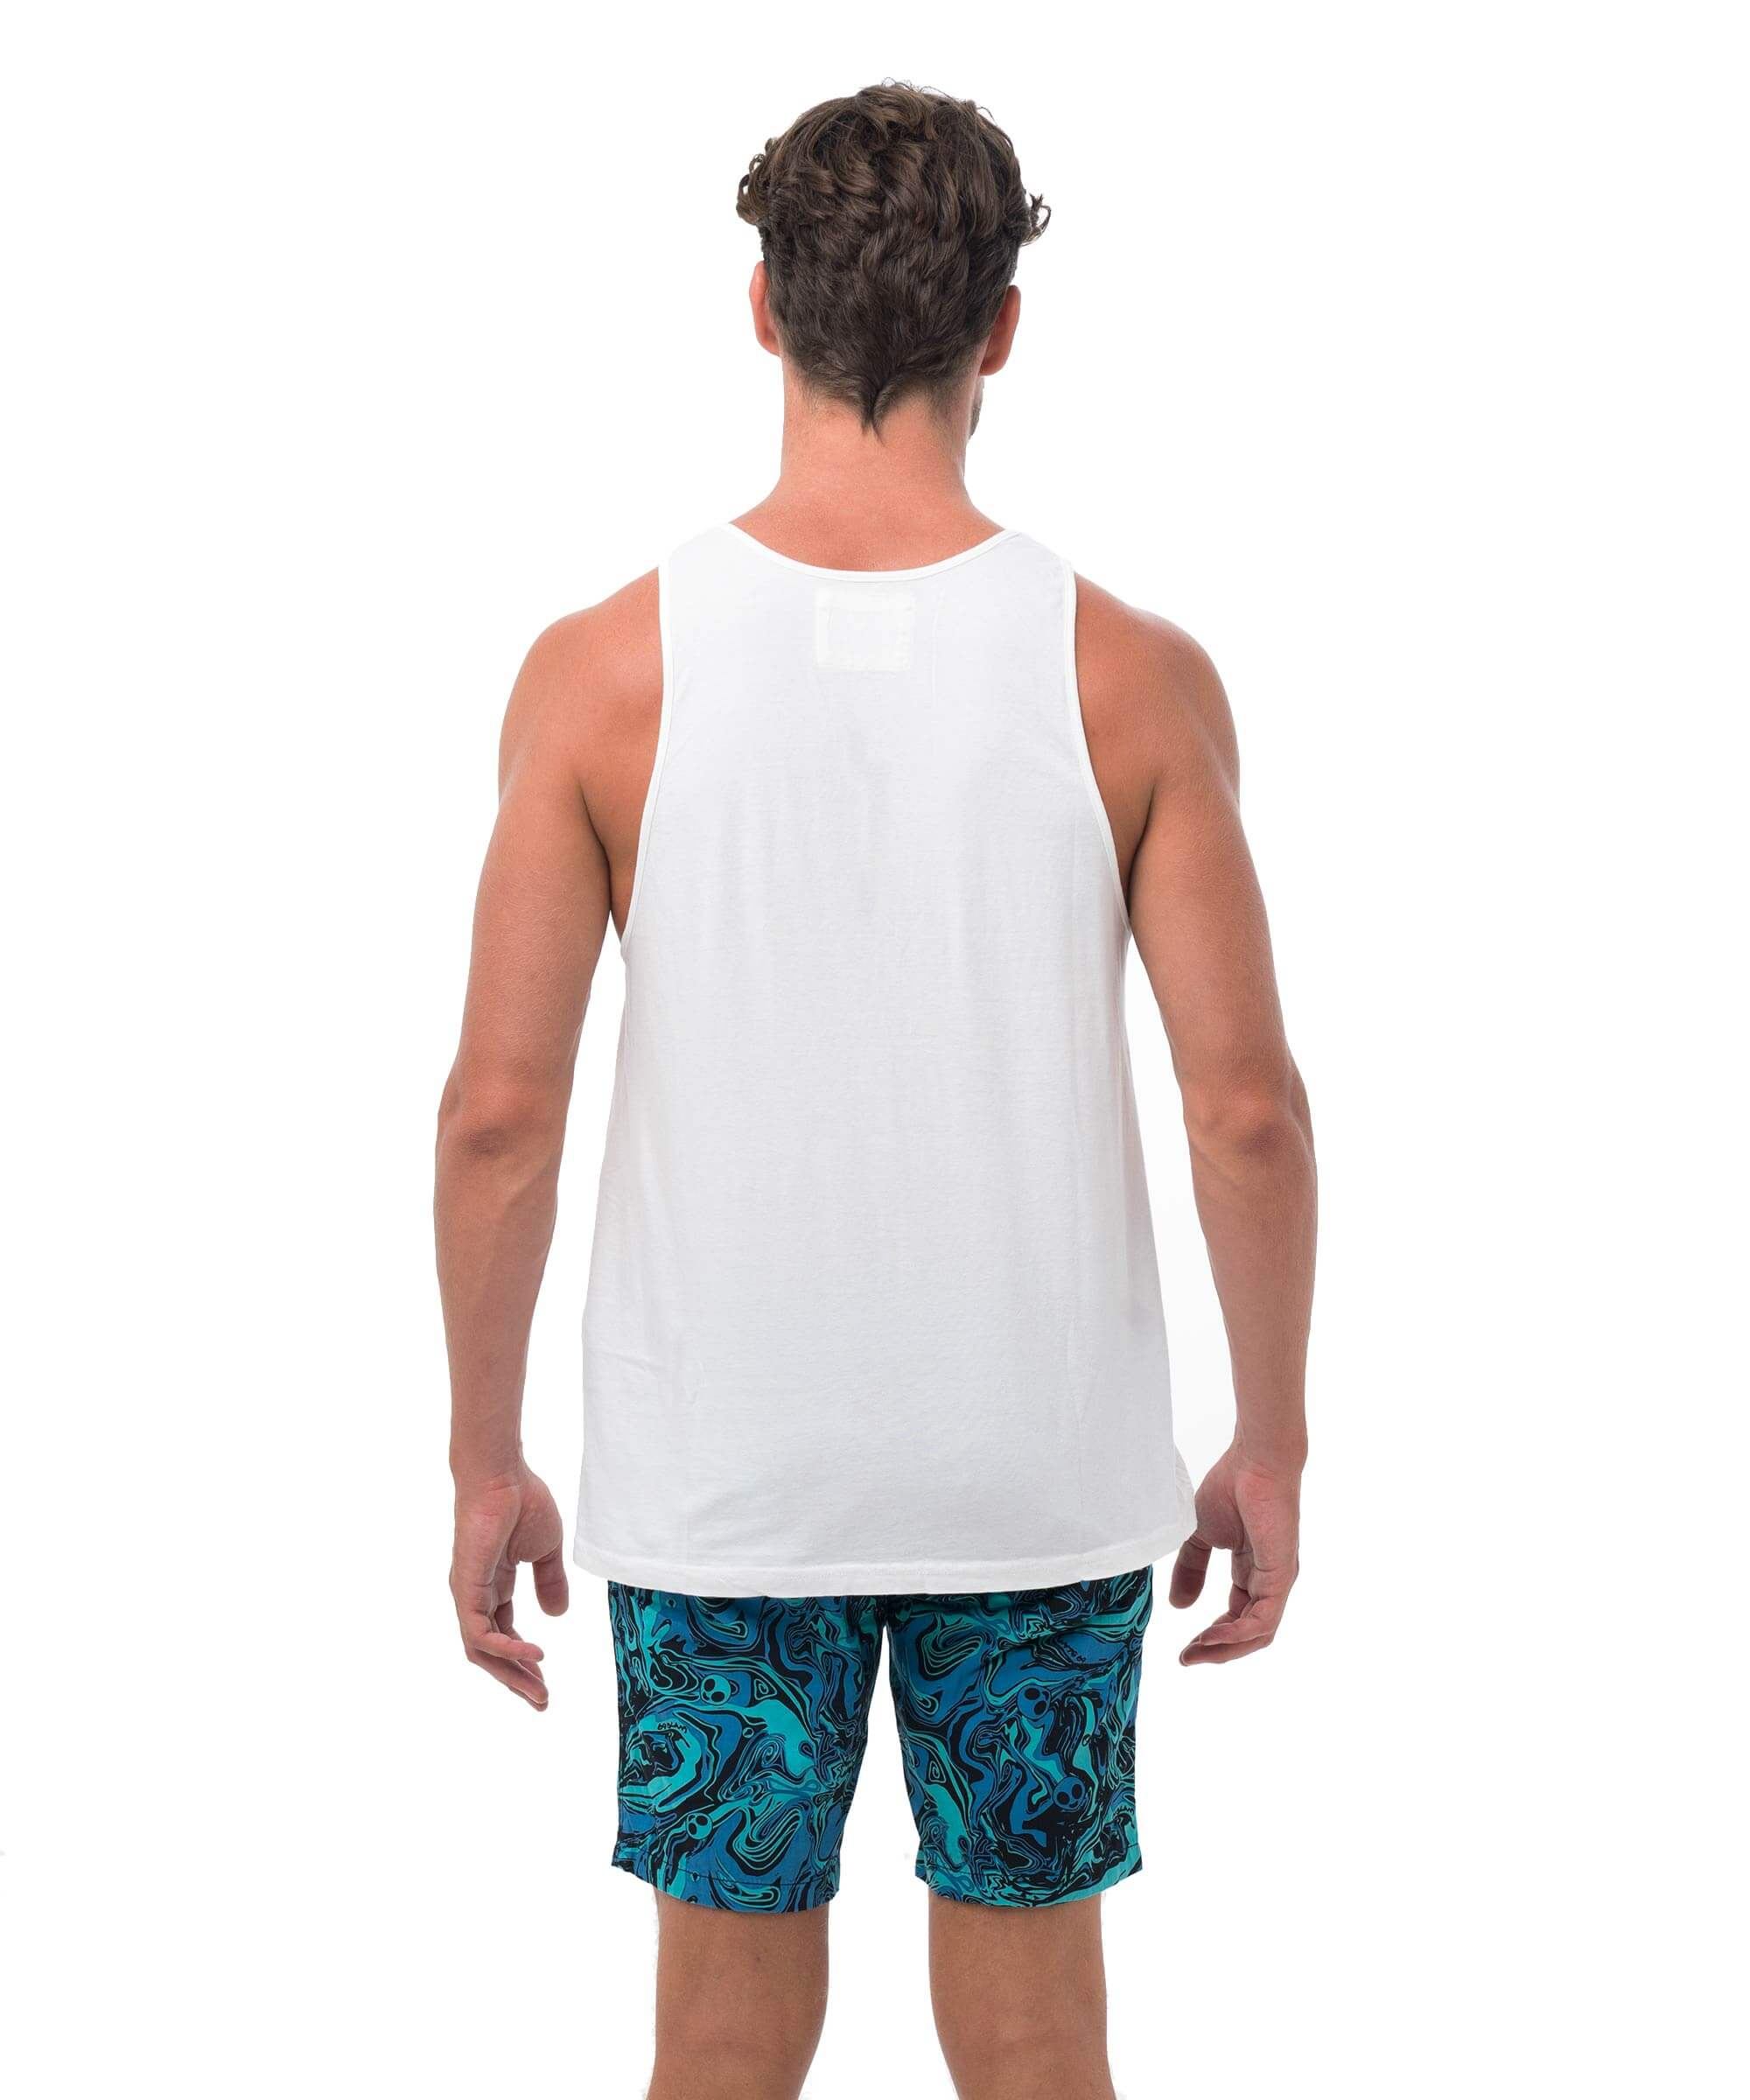 SMIRKING SKY PHOTO WHITE SINGLET